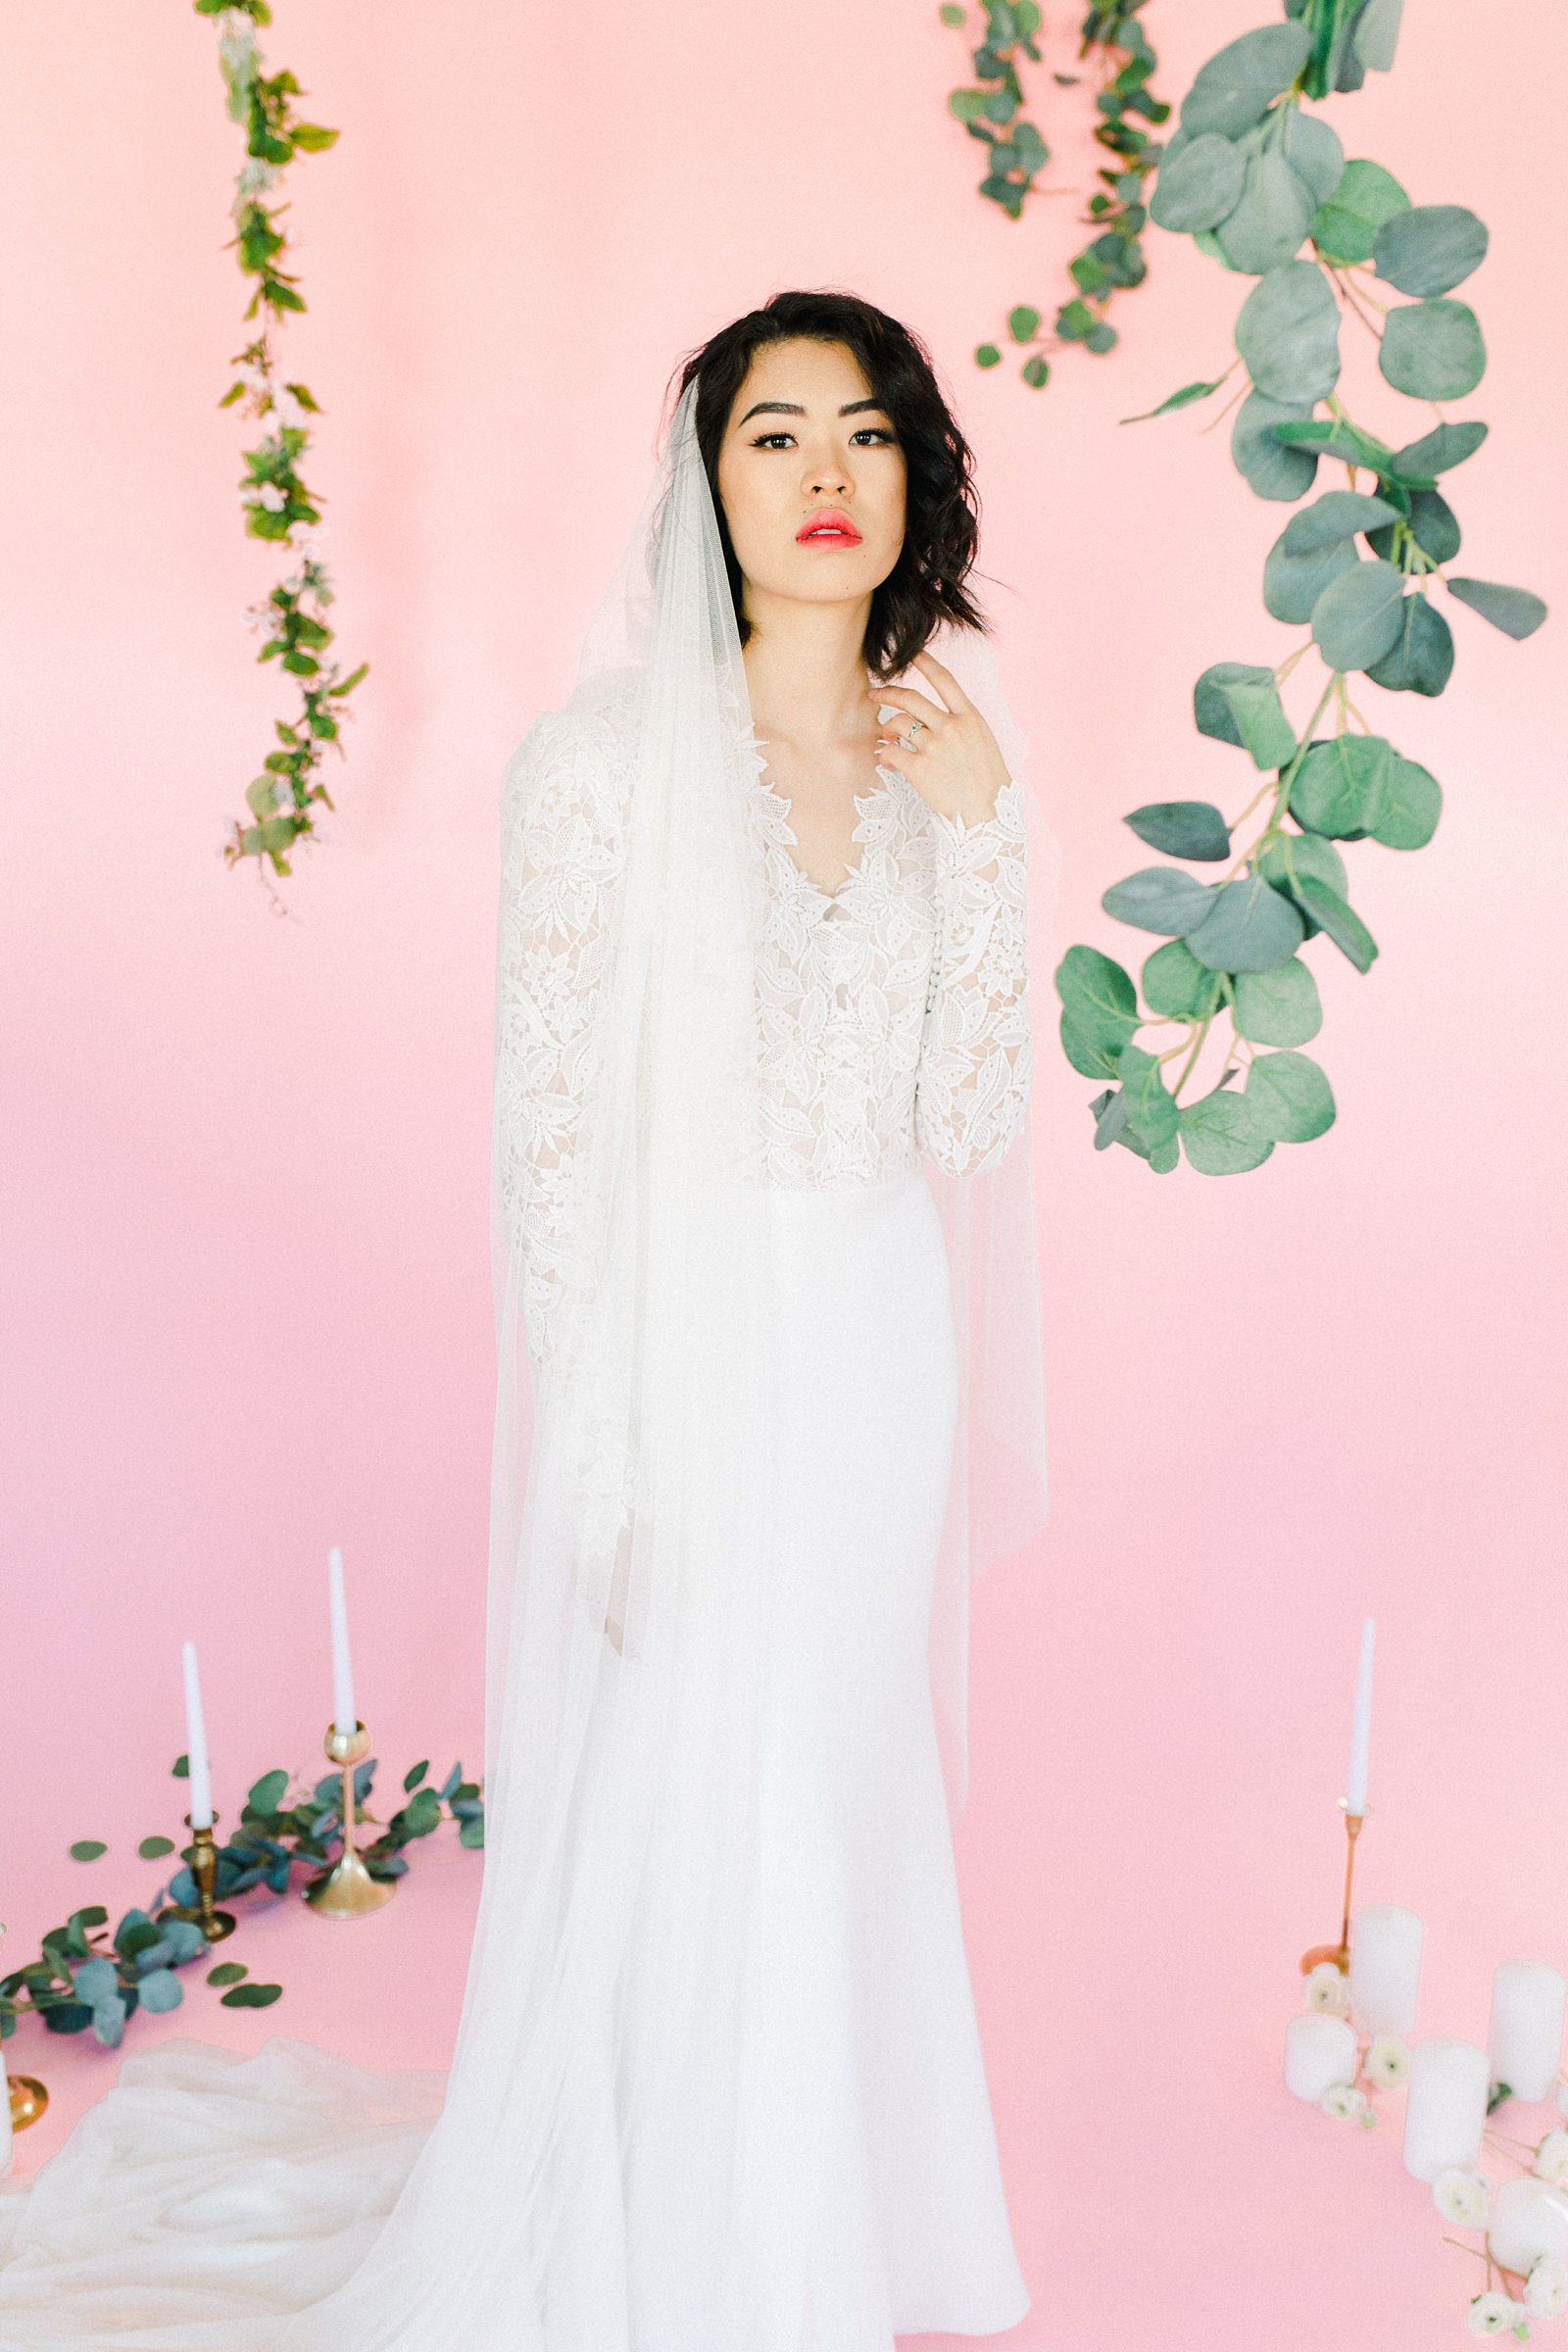 Utah wedding photography inspiration, Lazaro lace v-neck wedding dress with vintage lace and long sleeves, draped long flowy veil